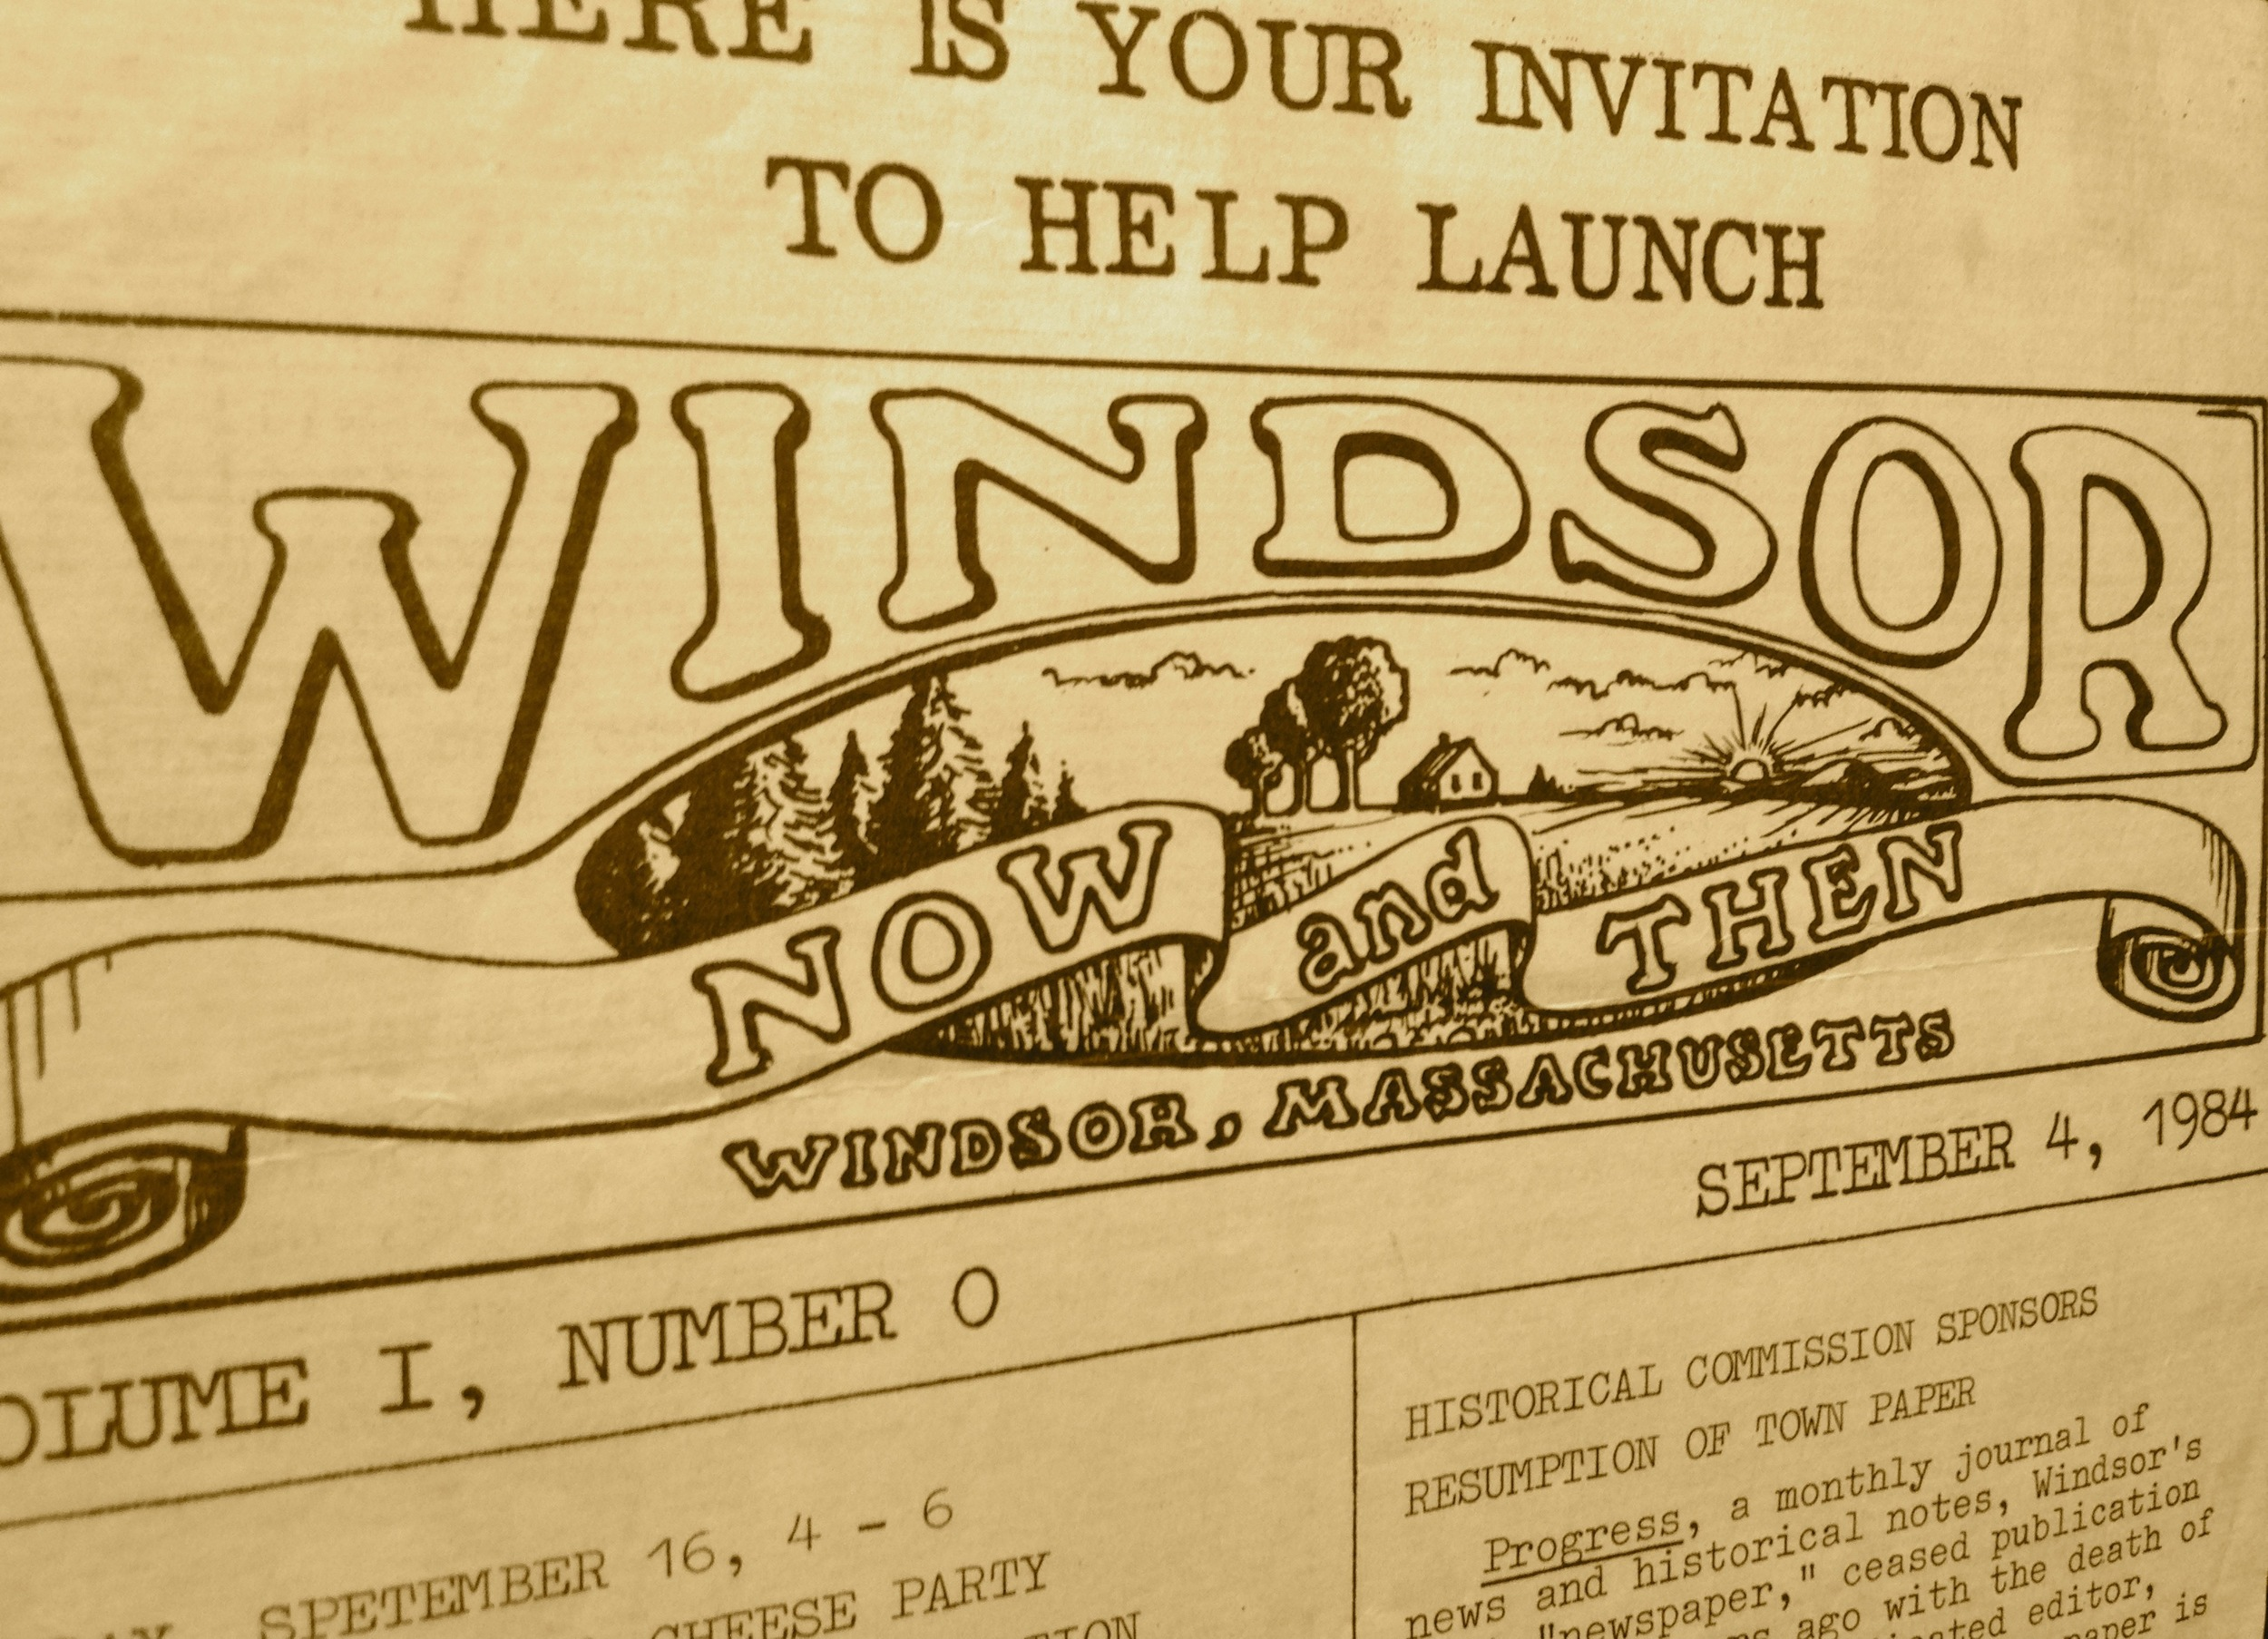 The first issue of Windsor Now & Then was published in September, 1984